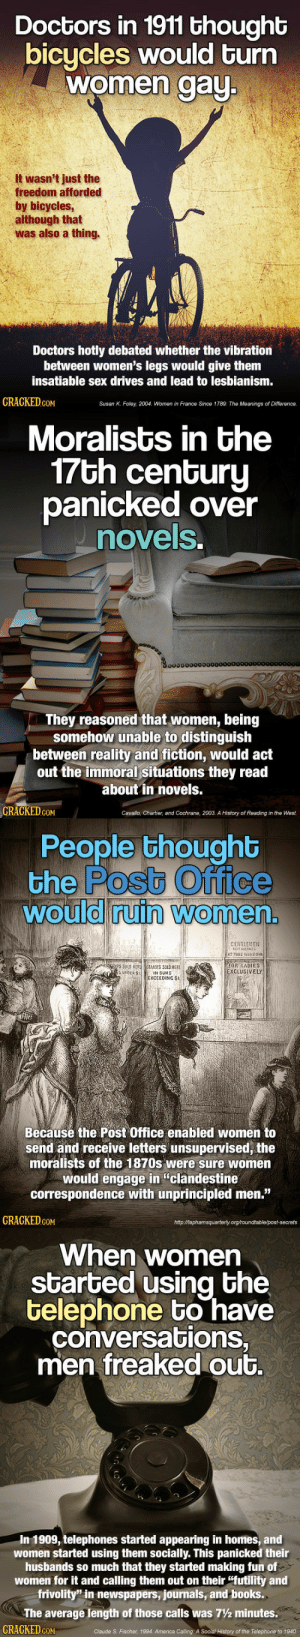 """virginiaisforhaters:  Wow it's almost like most of human history has been about controlling women… or something…: Doctors in 1911 thought  bicycles would turn  women aU  It wasn't just the  freedom afforded  by bicycles  although that  was also a thing.  Doctors hotly debated whether the vibration  between women's legs would give them  insatiable sex drives and lead to lesbianism  GRAGKED GoM  Susan K. Foley, 2004, Women in France Since 1789: The Meanings of Difference.   Moralists in the  7Gh cenGuru  panicked over  novels  0o000000000  They reasoned that women, being  somehow unable to distinguish  between reality and fiction, would act  out the immoral situations they read  about in novels.  GRAGKED.GOM  Cavallo, Chartier, and Cochrane, 2003. A History of Reading in the West.   People thoughb  the Postb Office  would ruin Women  0  0  CENTLEMENl  FOR LADIES  XCLUSİVELY  SUNDER S  IN SUMS  EXCEEDING SI  Becausé the Post Office enabled women to  send and receive letters unsupervised, the  moralists of the 1870s were sure women  would engage in """"clandestine  correspondence with unprincipled men.""""  GRAGKED coM  httpMaphamsquarterly org/roundtable/post-secrets   When women  started using bhe  telephone bo have  conversations,  men freaked out.  In 1909, telephones started appearing in homes, and  women started using them socially. This panicked their  husbands so much that they started making fun of  women for it and calling them out on their """"futility and  frivolity"""" in newspapers, journals, and books.  The average length of those calls was 7½ minutes.  CRACKED cON  Claude S. Fischer, 1994. America Calling: A Social History of the Telephone to 1940 virginiaisforhaters:  Wow it's almost like most of human history has been about controlling women… or something…"""